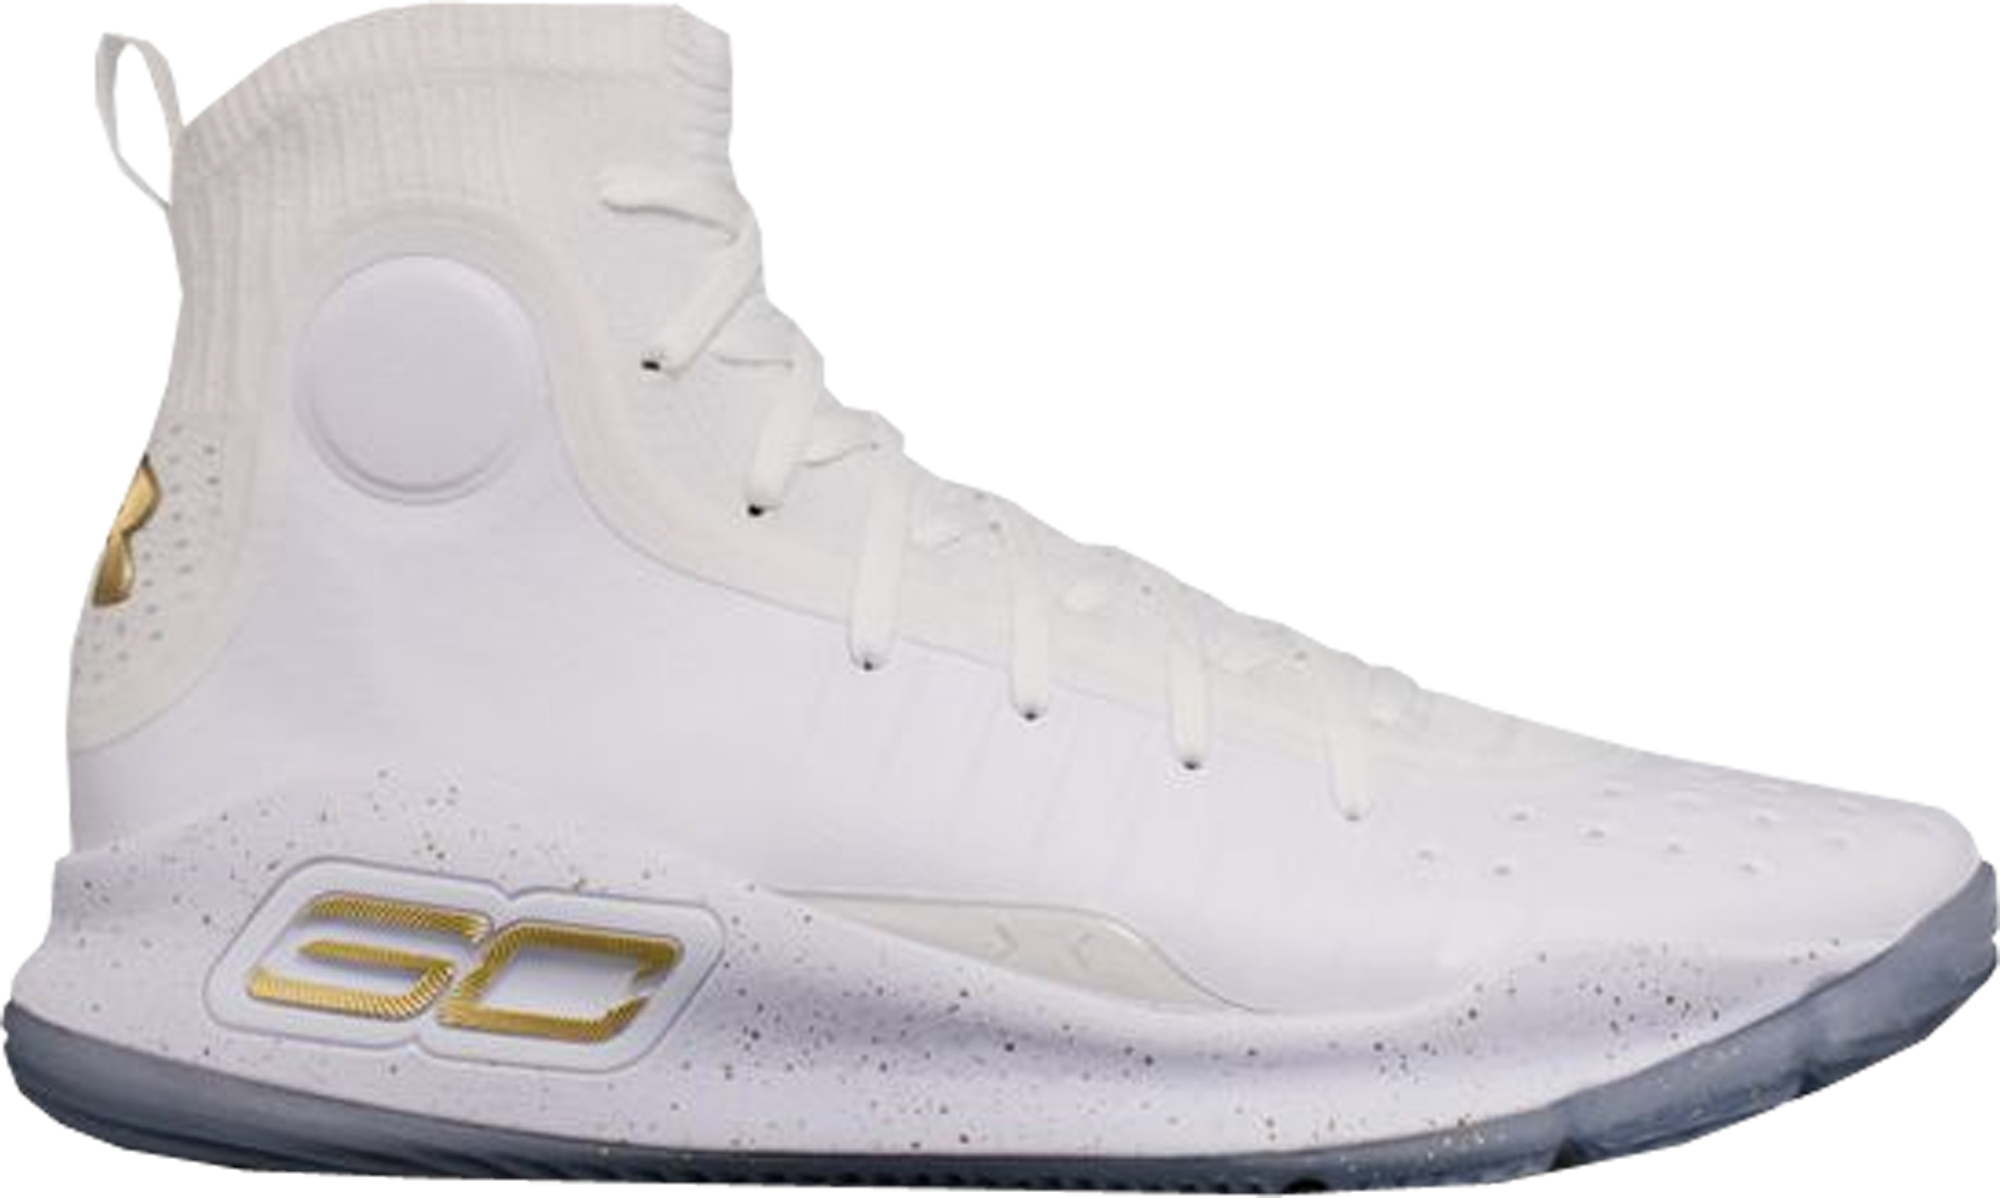 Under Armour Curry 4 White Gold